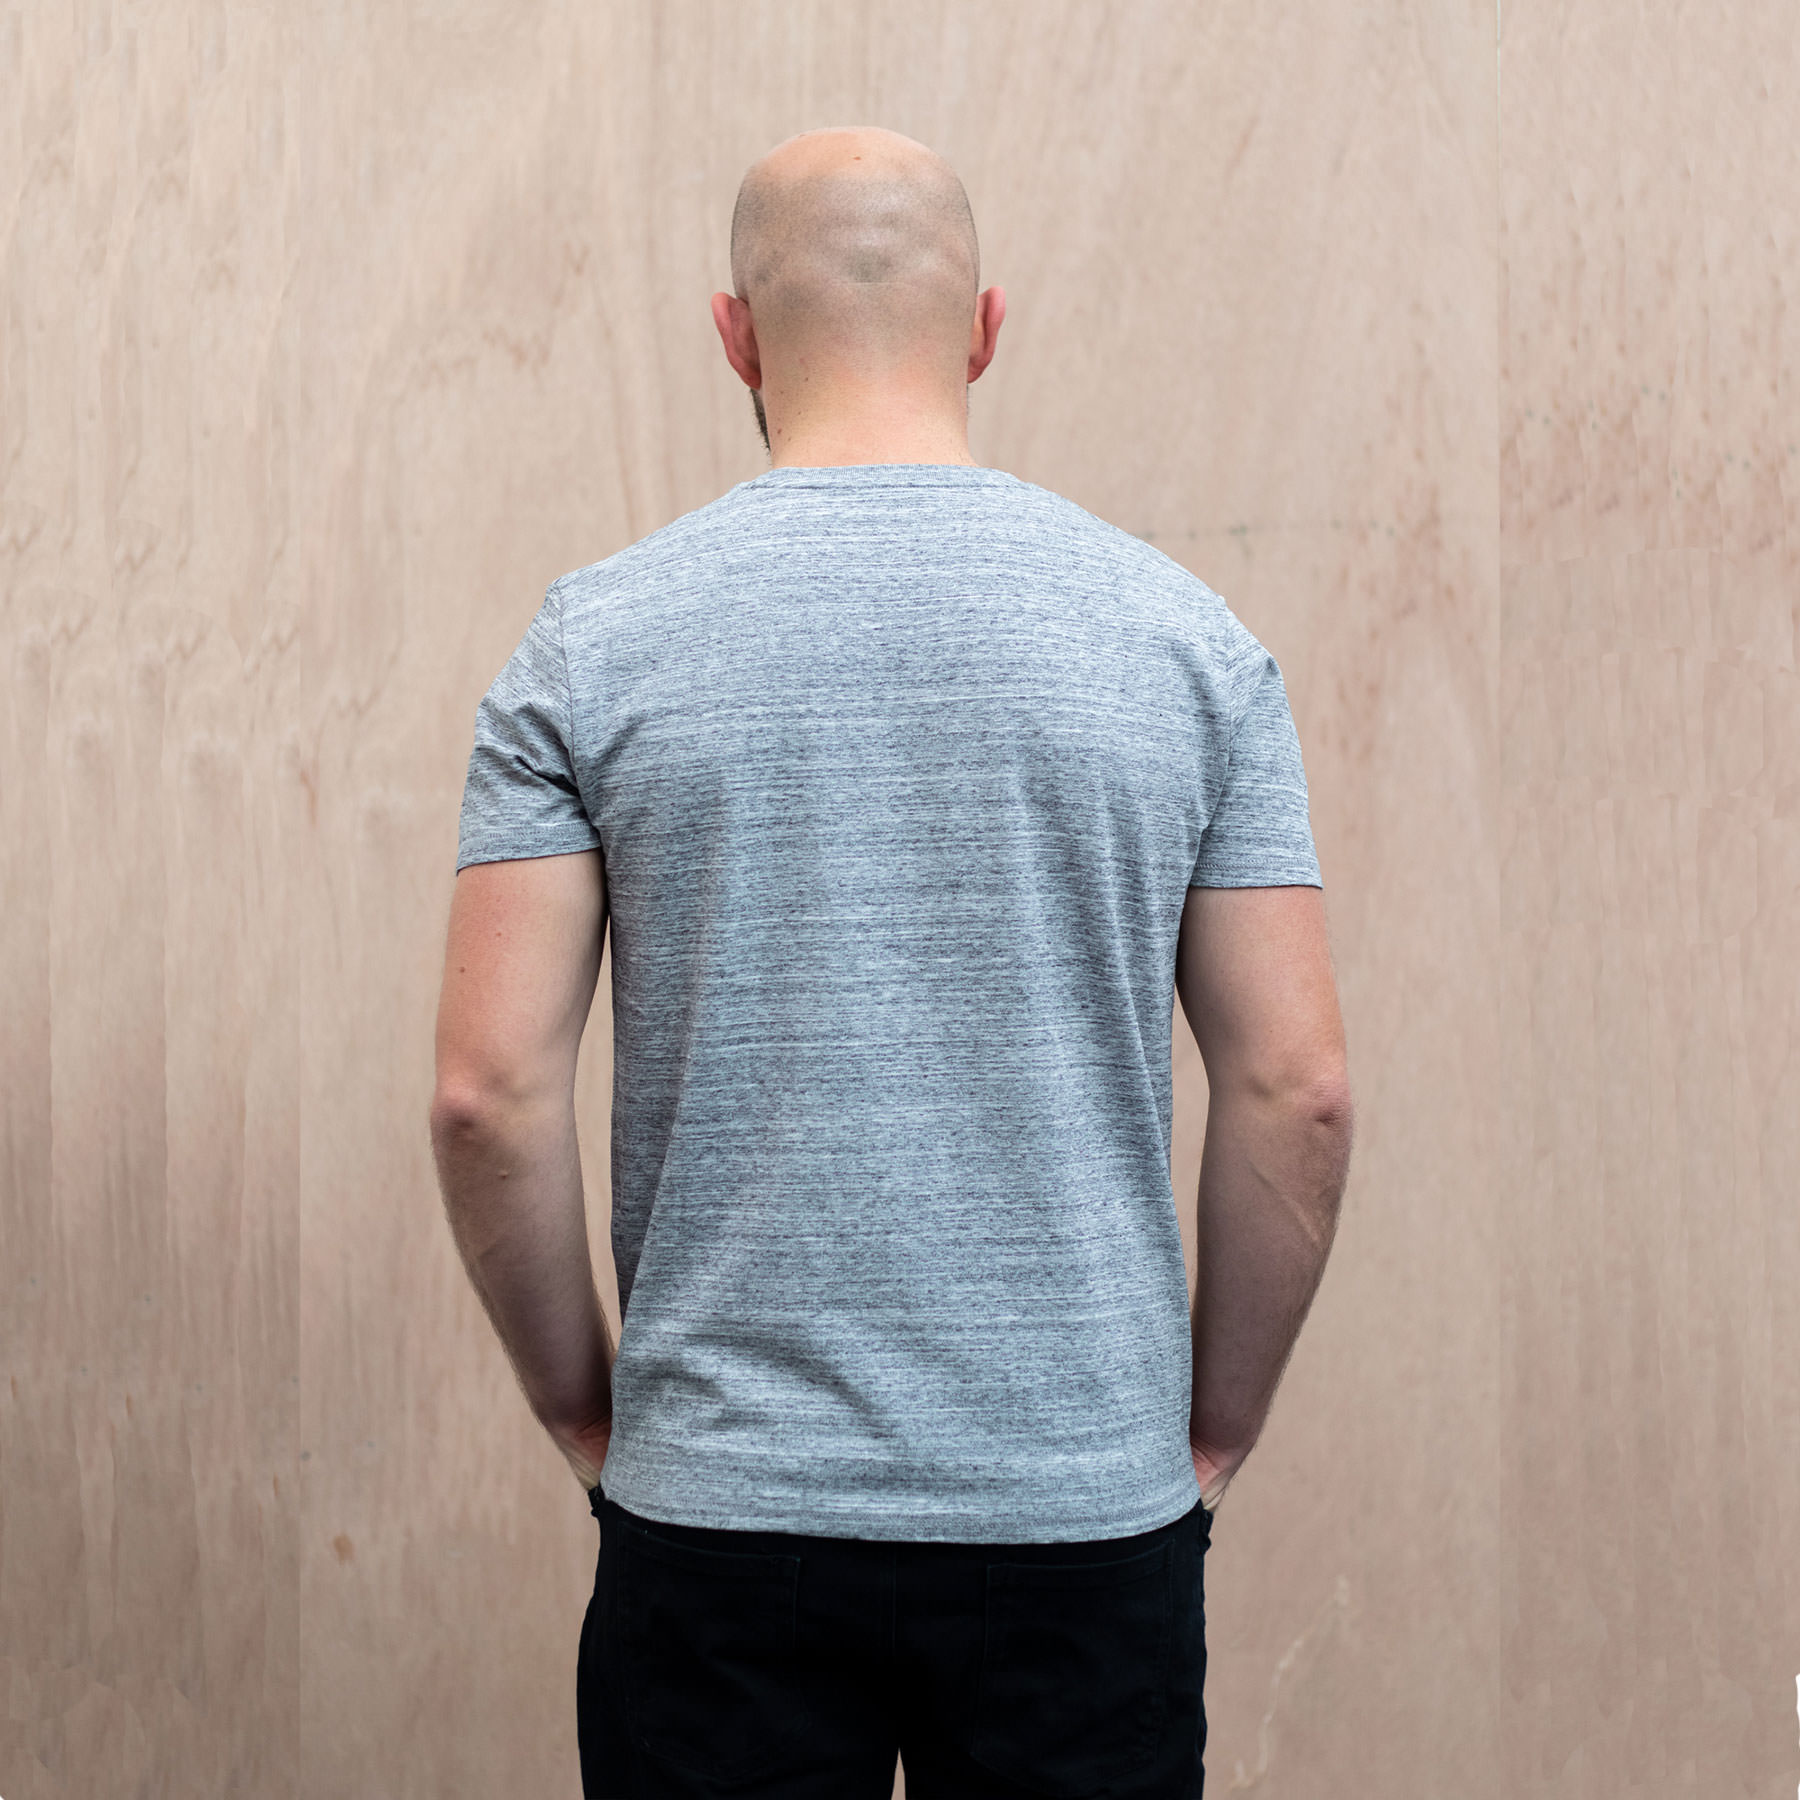 Bamford-tee-grey-mens-back-The-Level-Collective.jpg.jpg